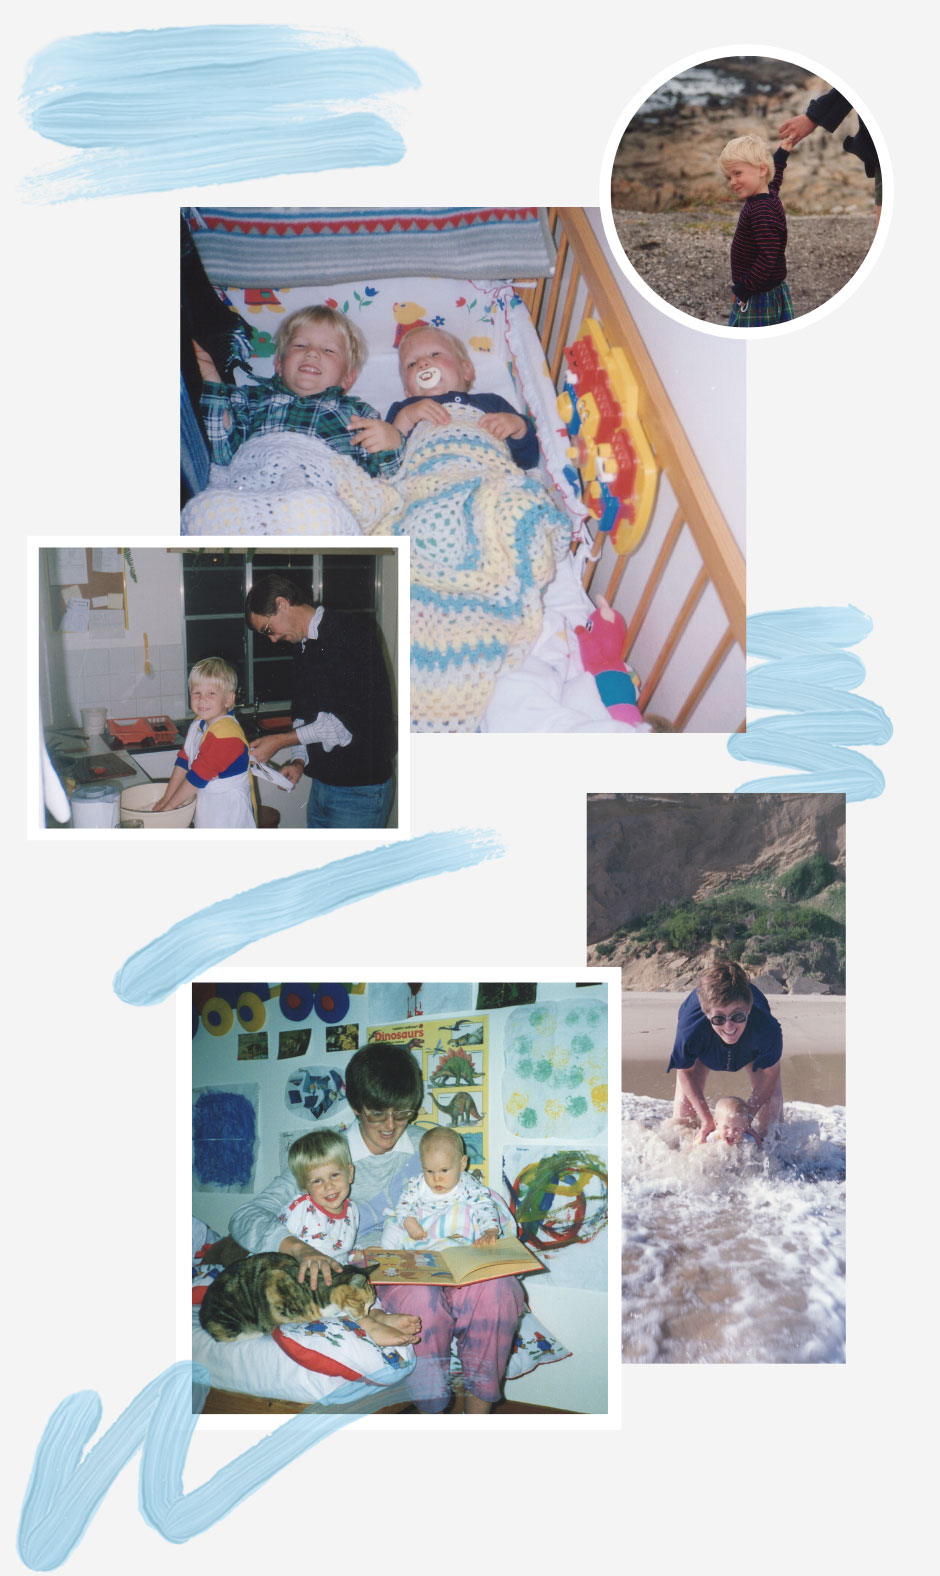 Photo montage of photographs from Darrell's family photo album.